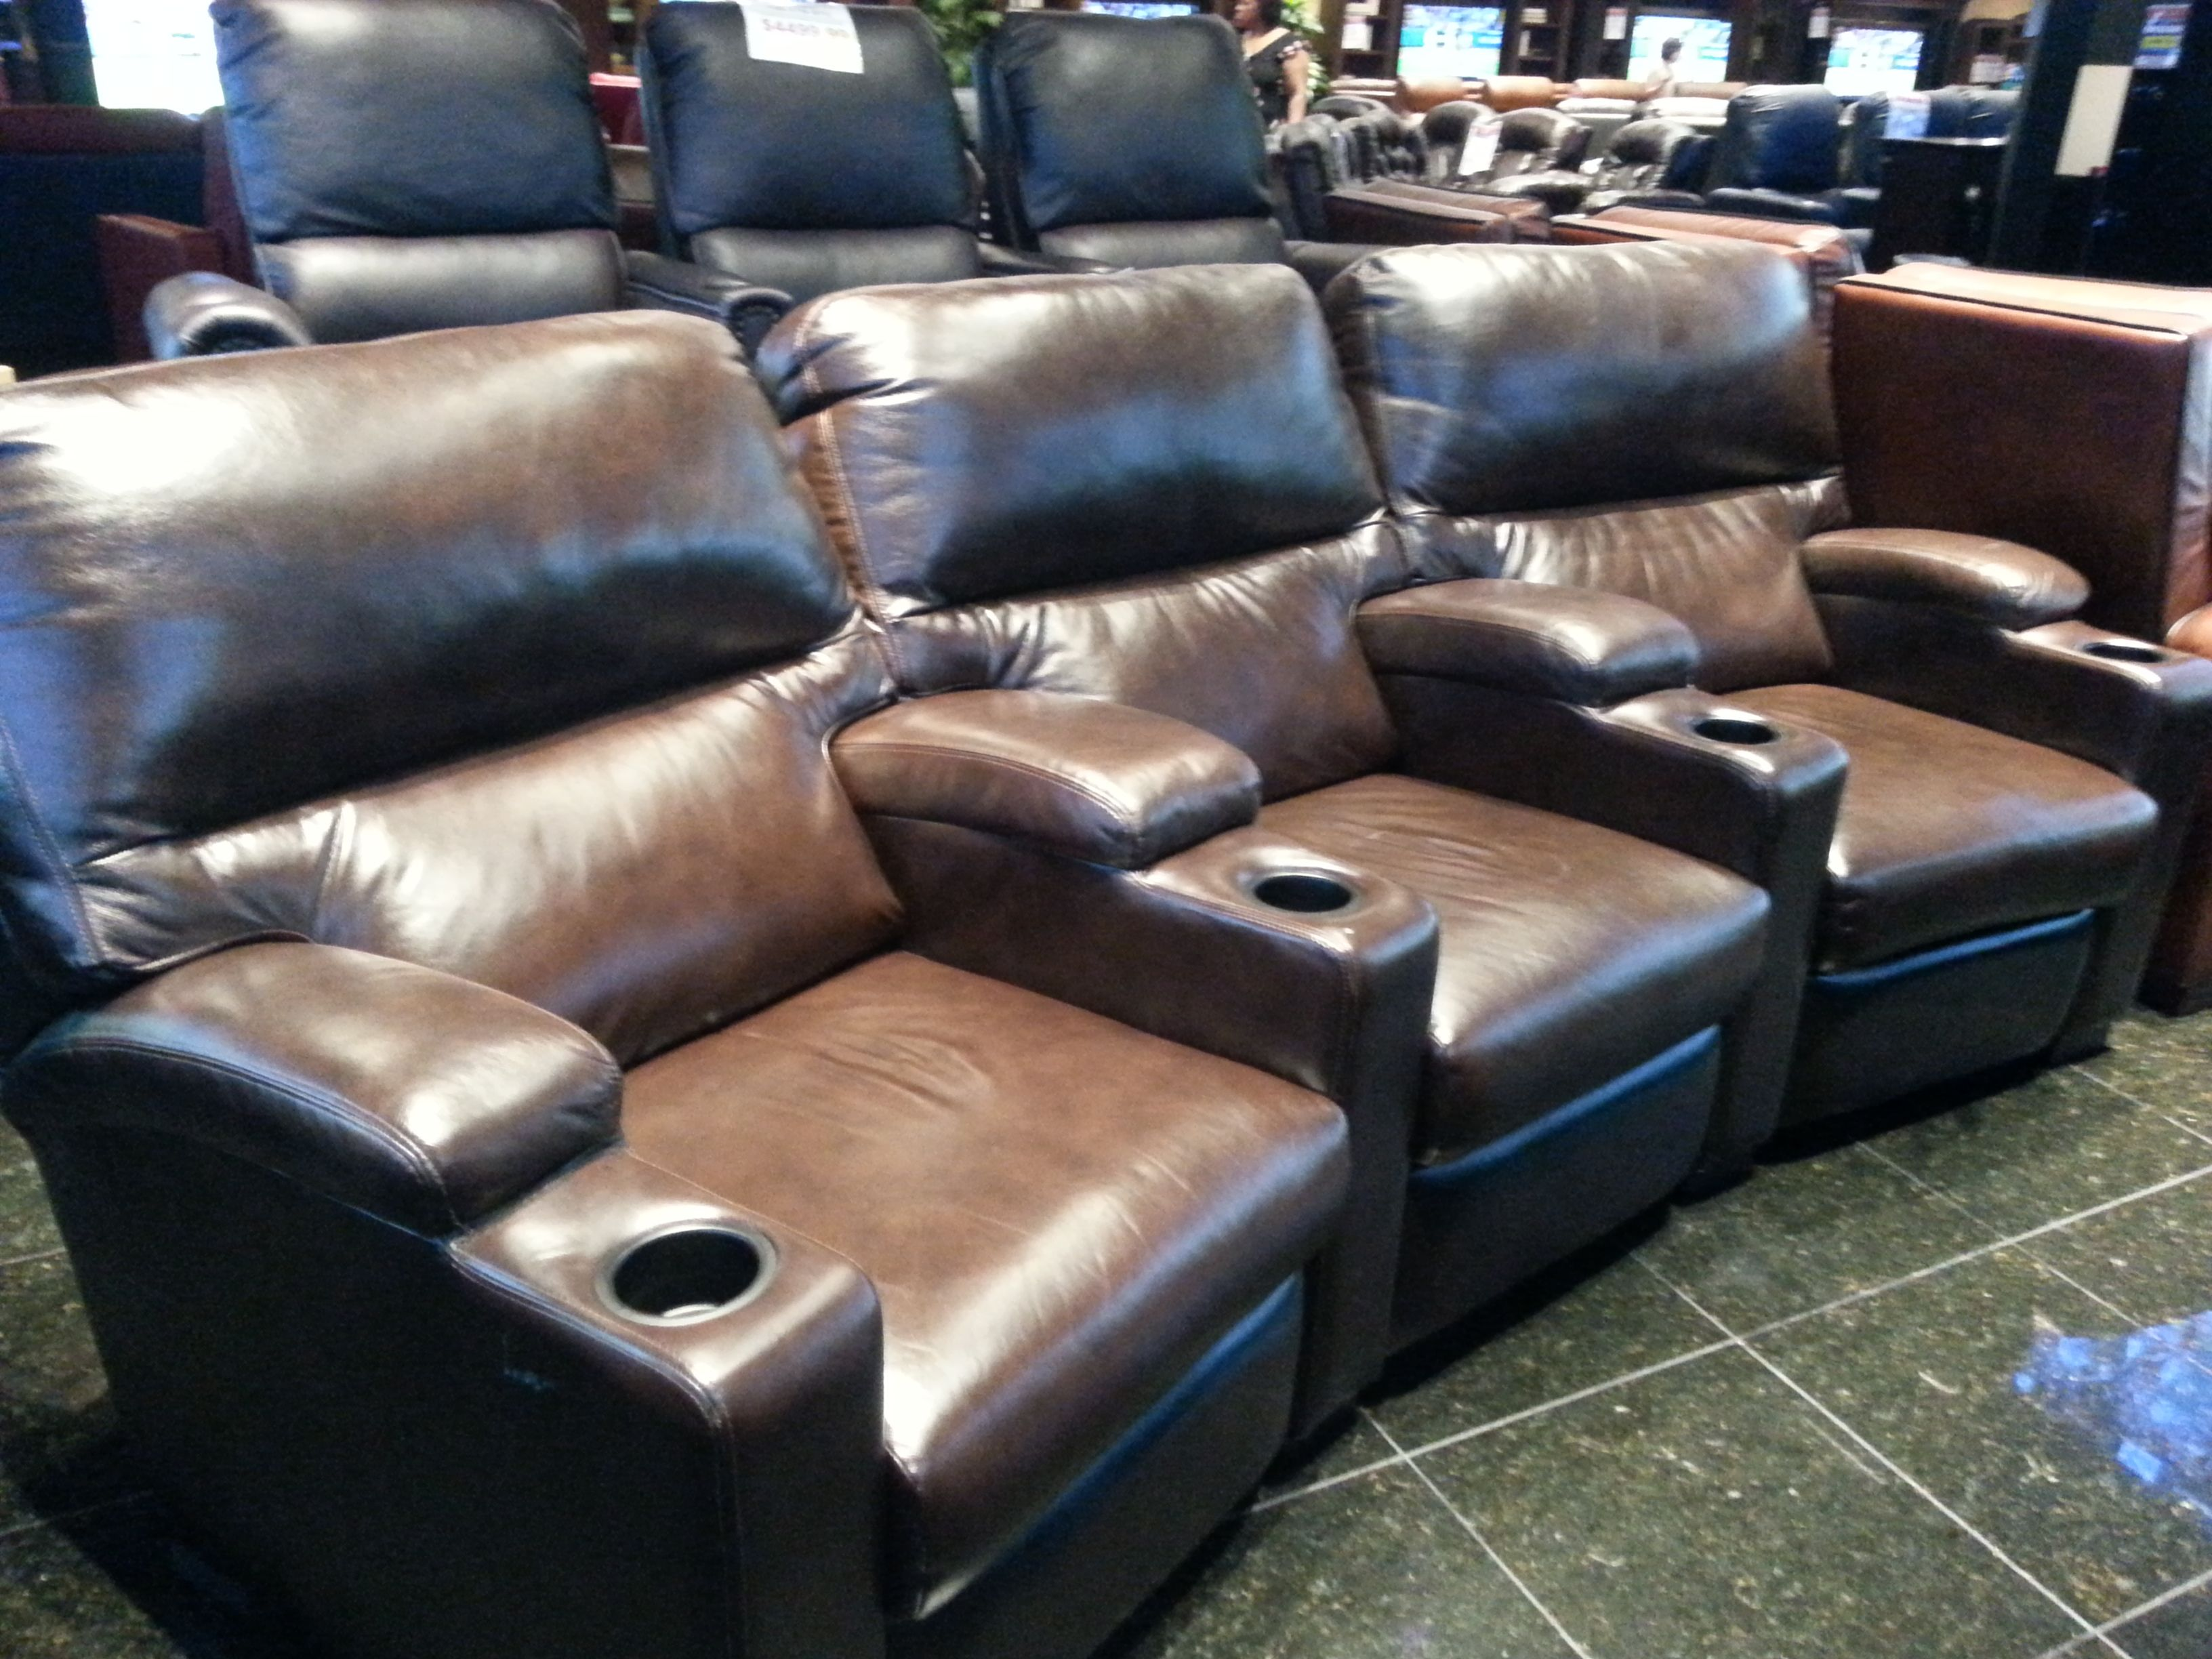 Upgrade Your Home Theater Room With Our Beautiful Leather Seating Equipped Cup Holders And Soft Back Seat Cushions You Will Be A